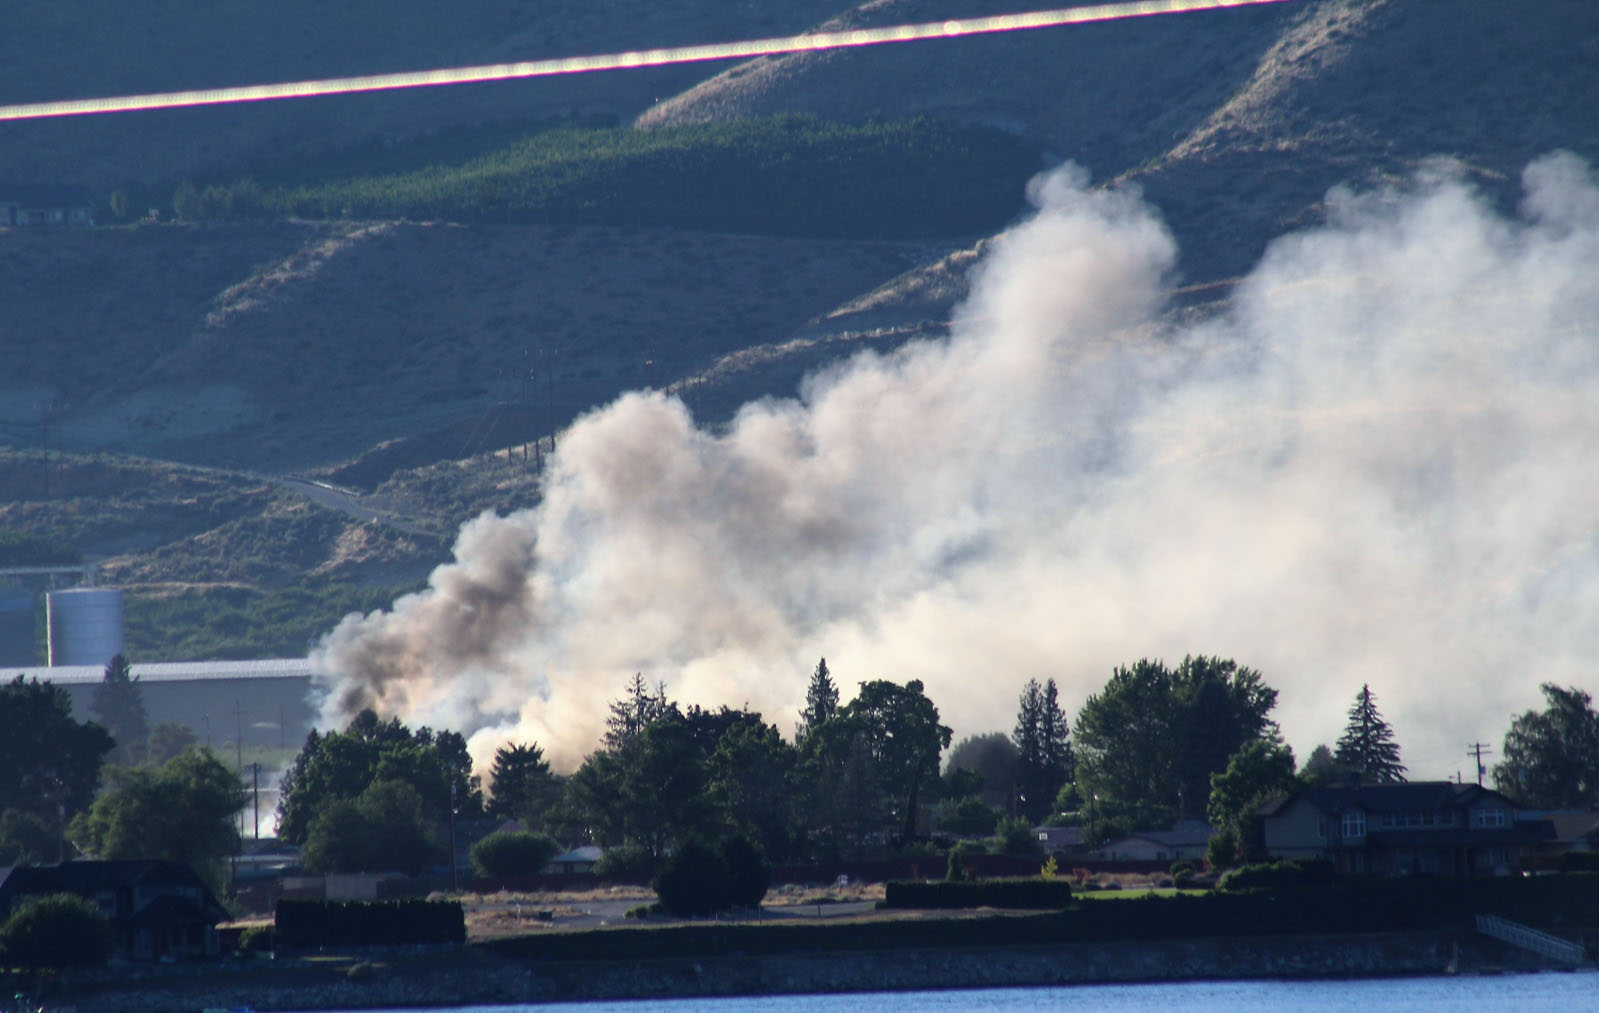 Smoke was clearly visible from the south shore of the Columbia River near Brewster.